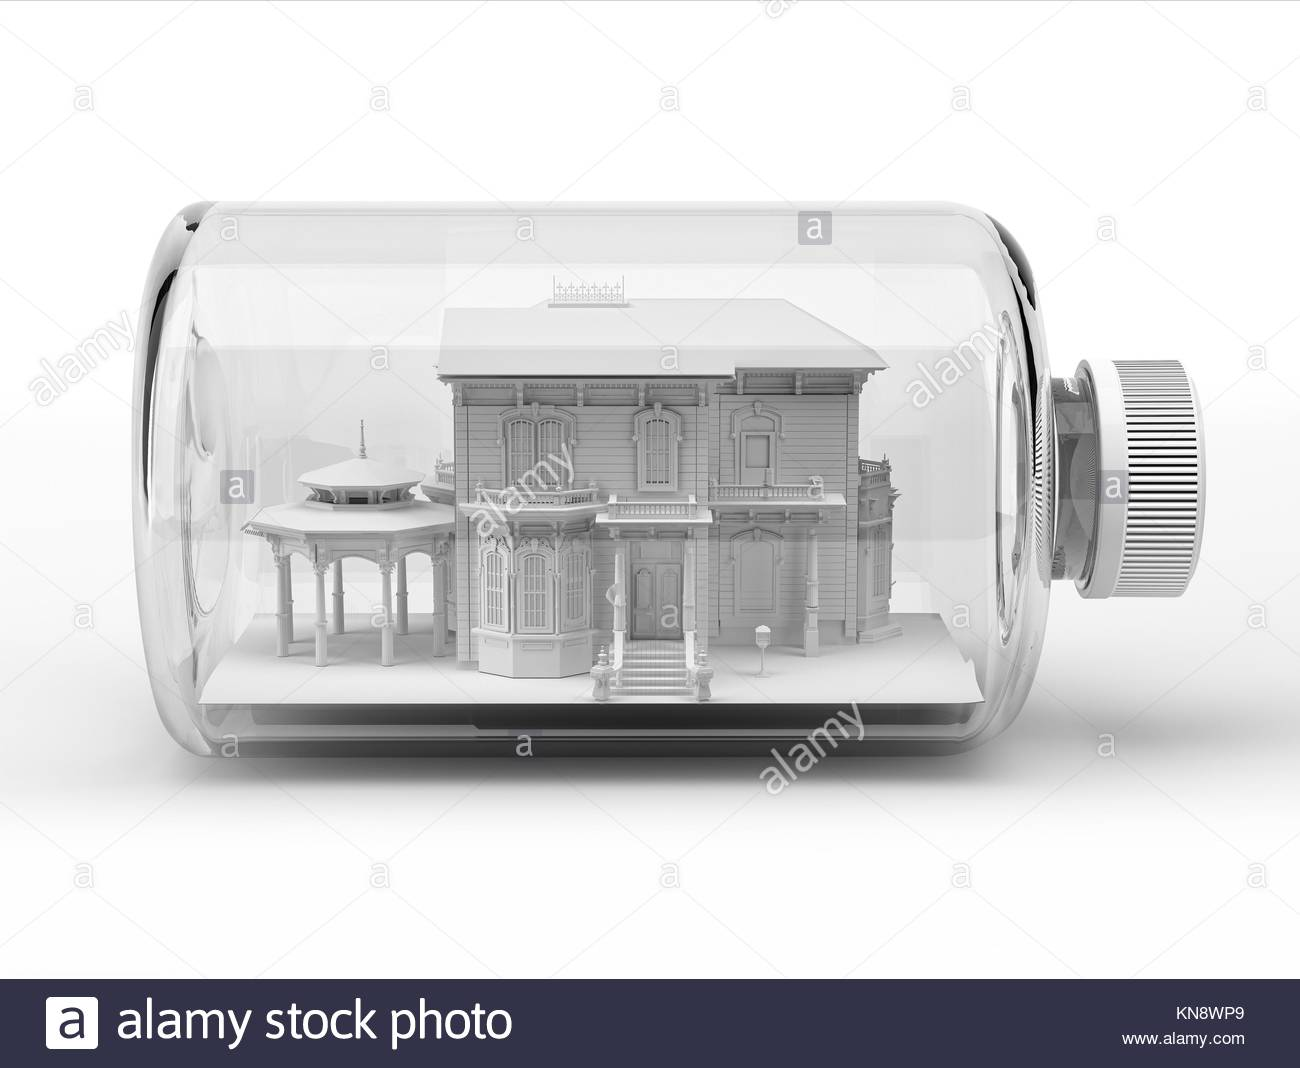 Victorian beautiful house, inside a bottle, on white background. Clipping path included. - Stock Image